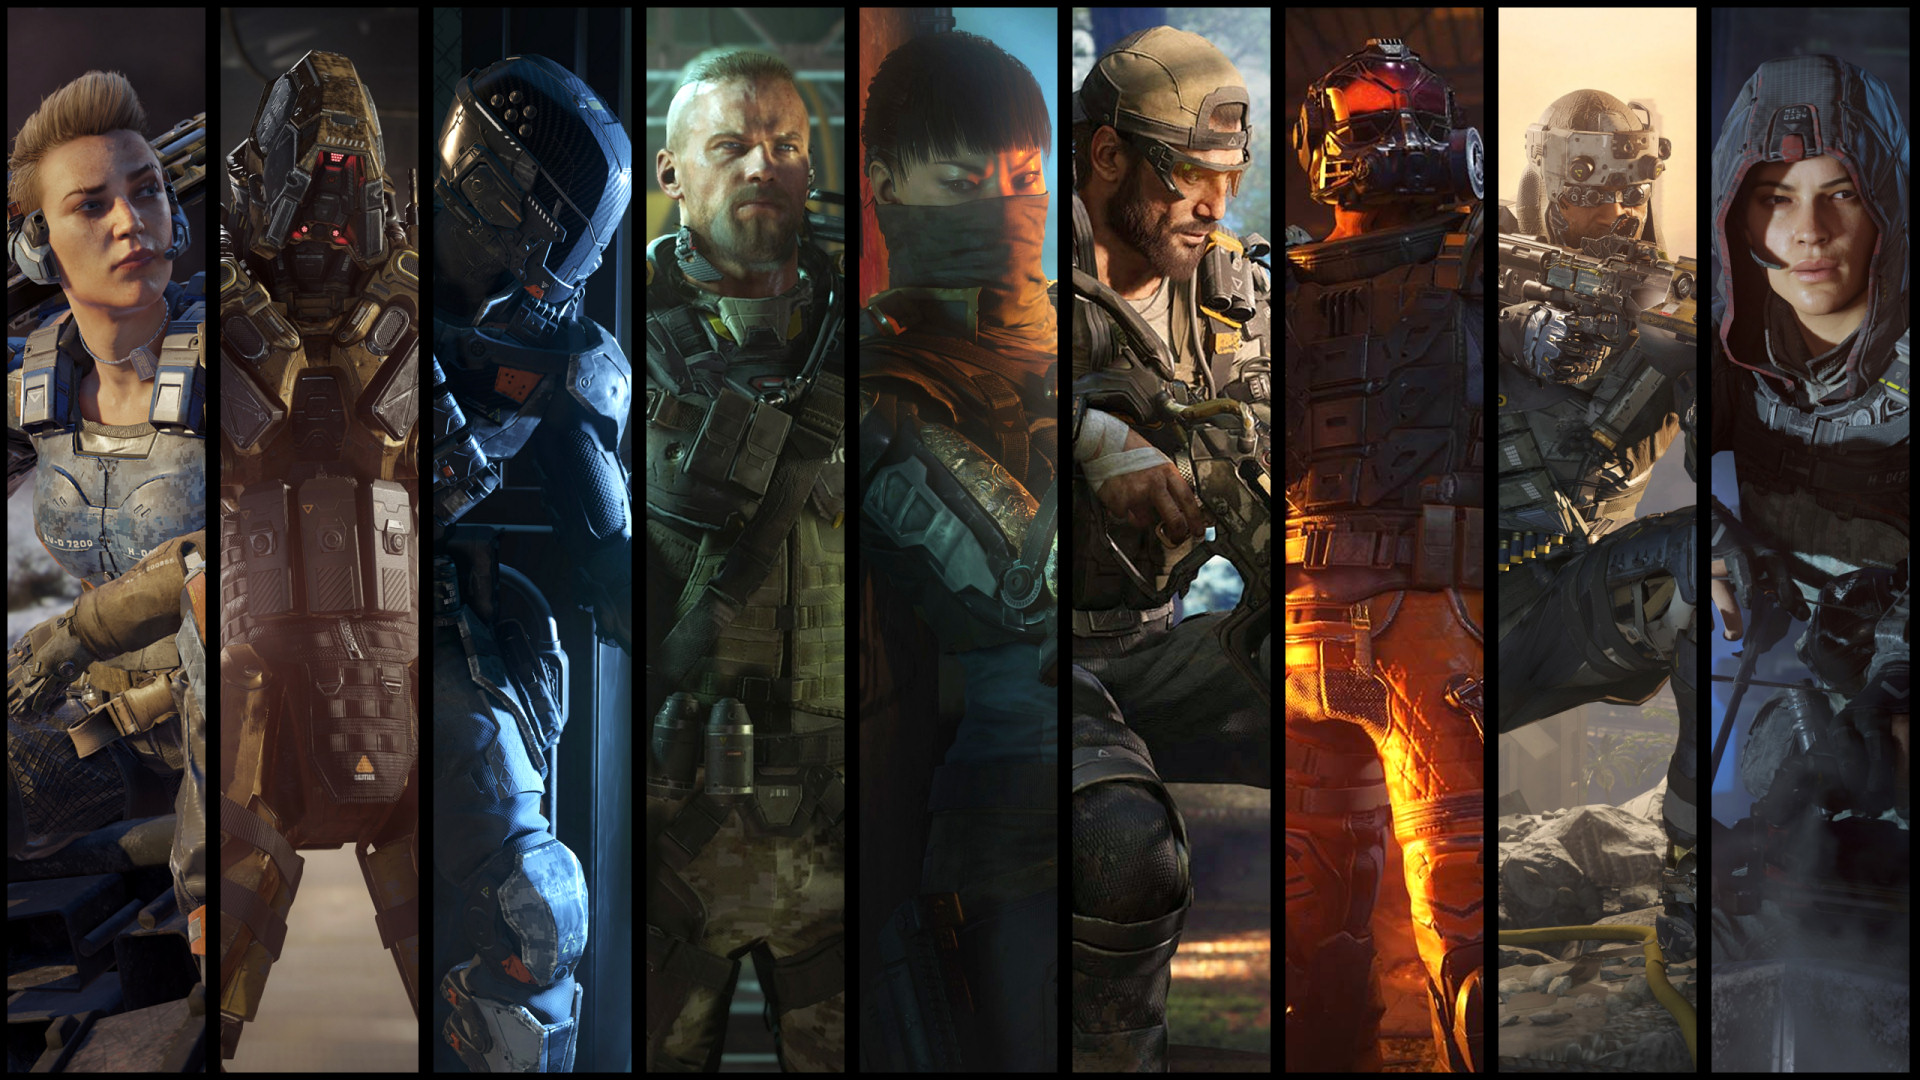 bo3 wallpaper wallpapersafari